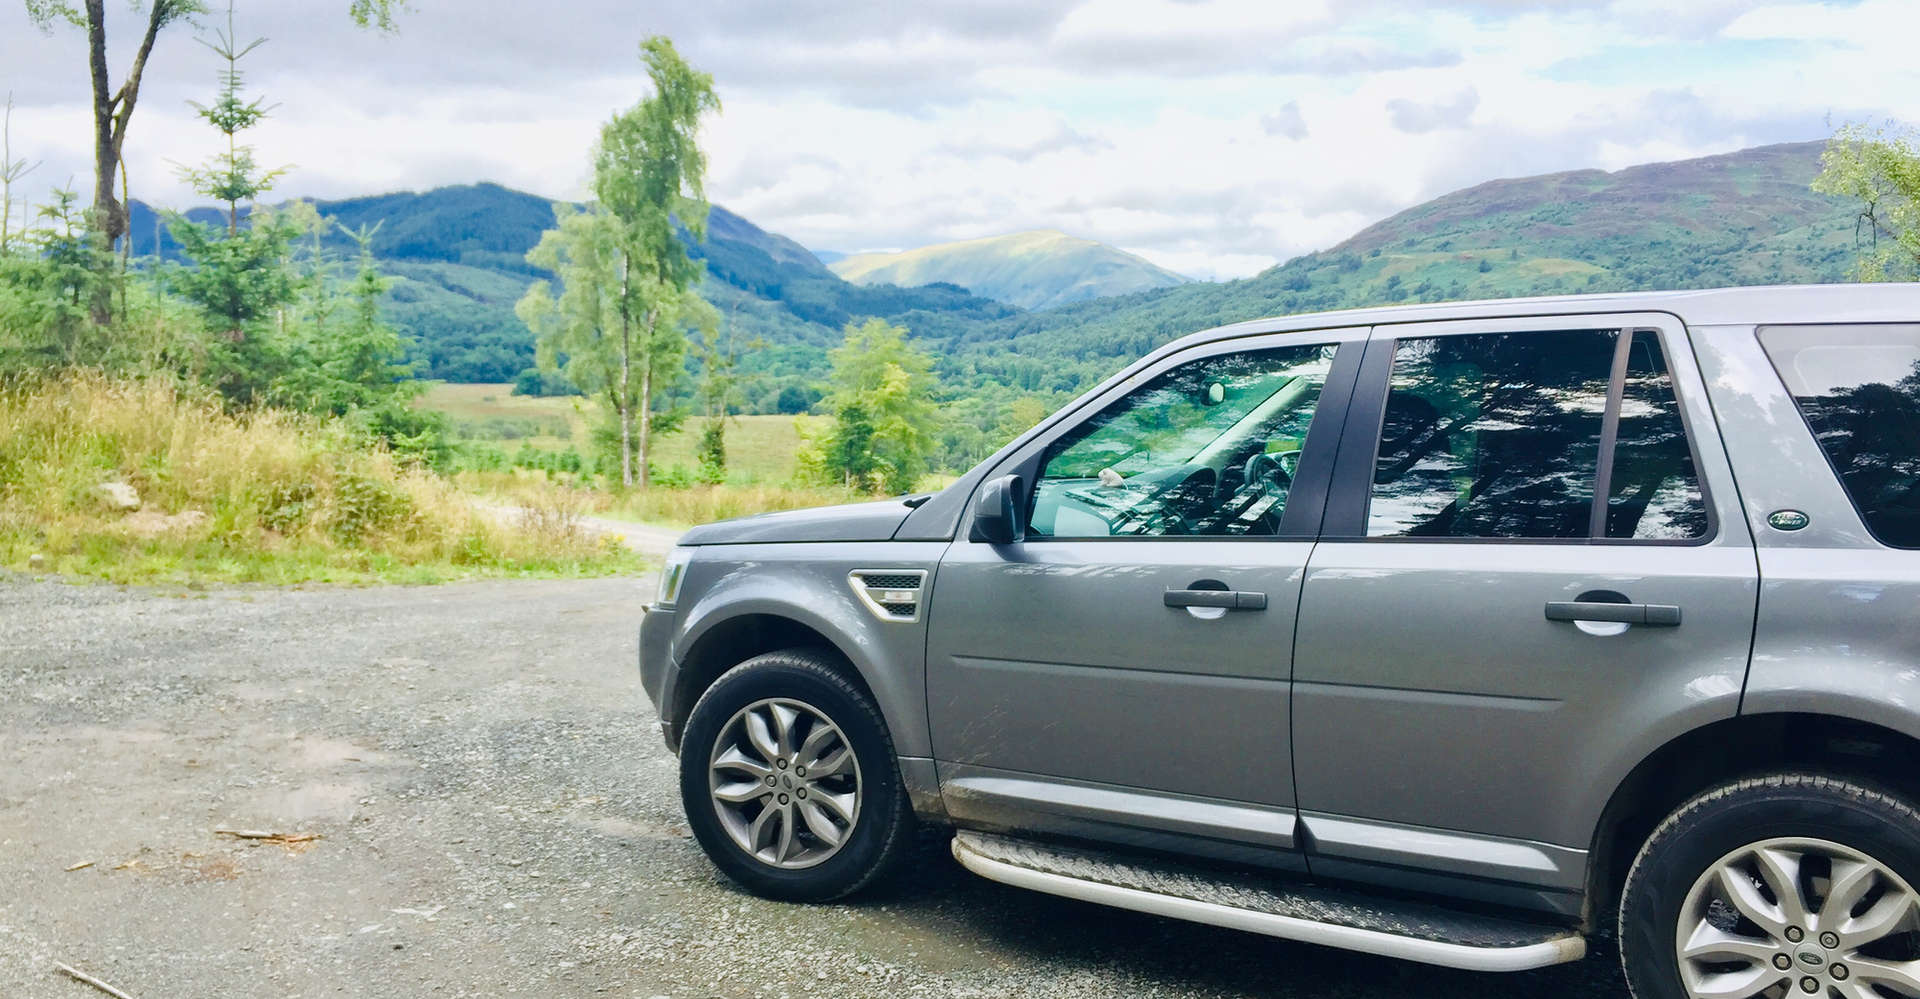 luxury private vehicle off road on loch lomond tour